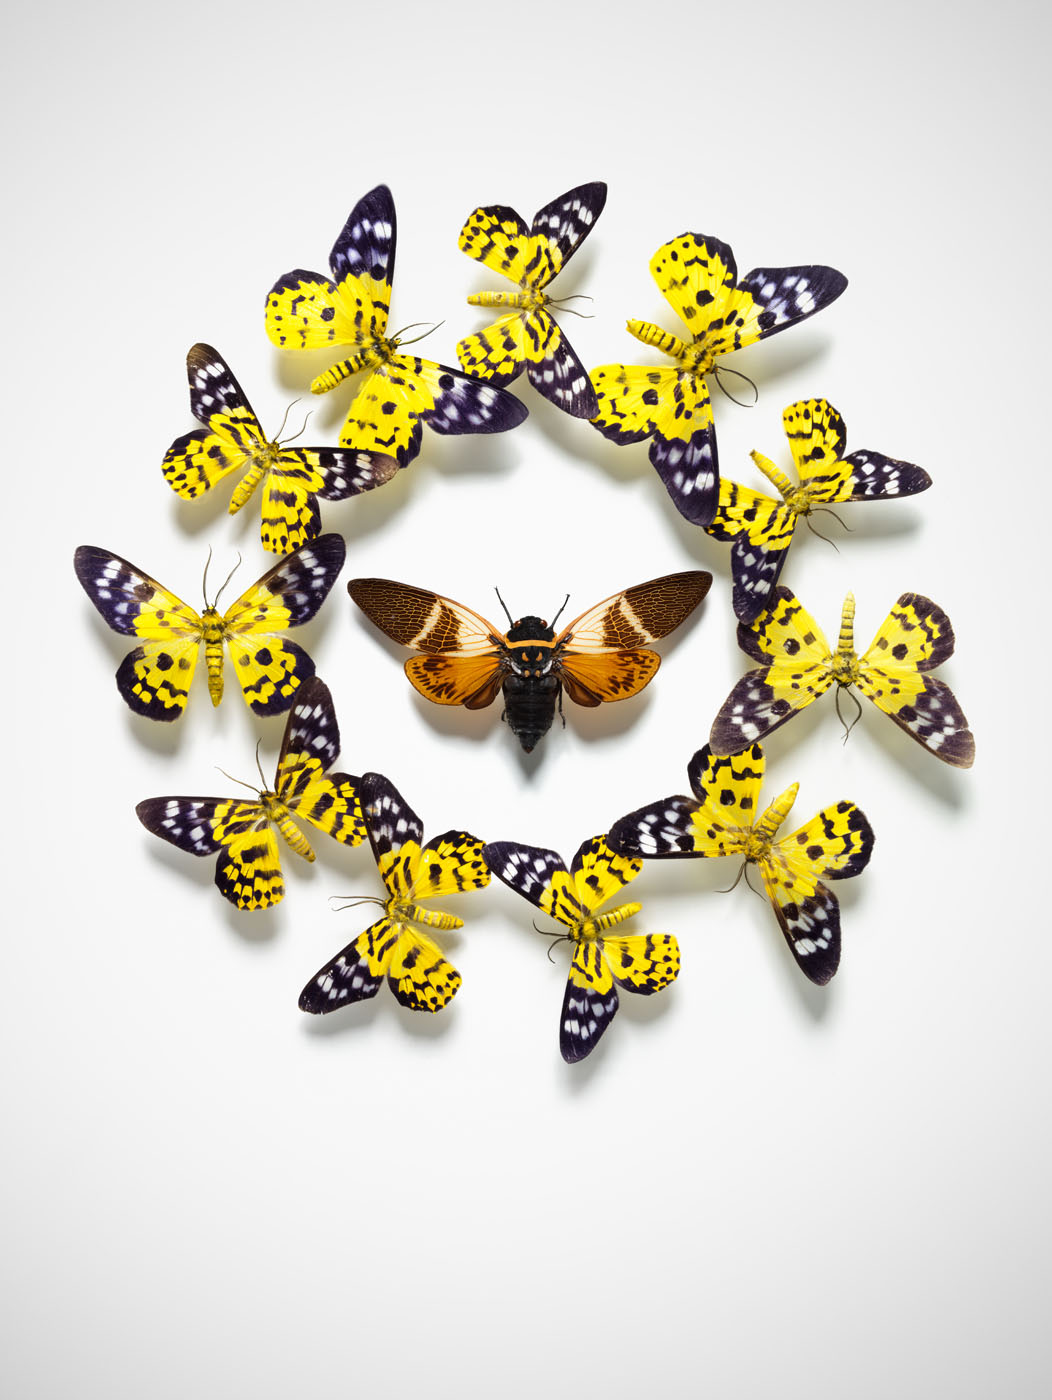 AK_Test_Butterflies_yellow2400